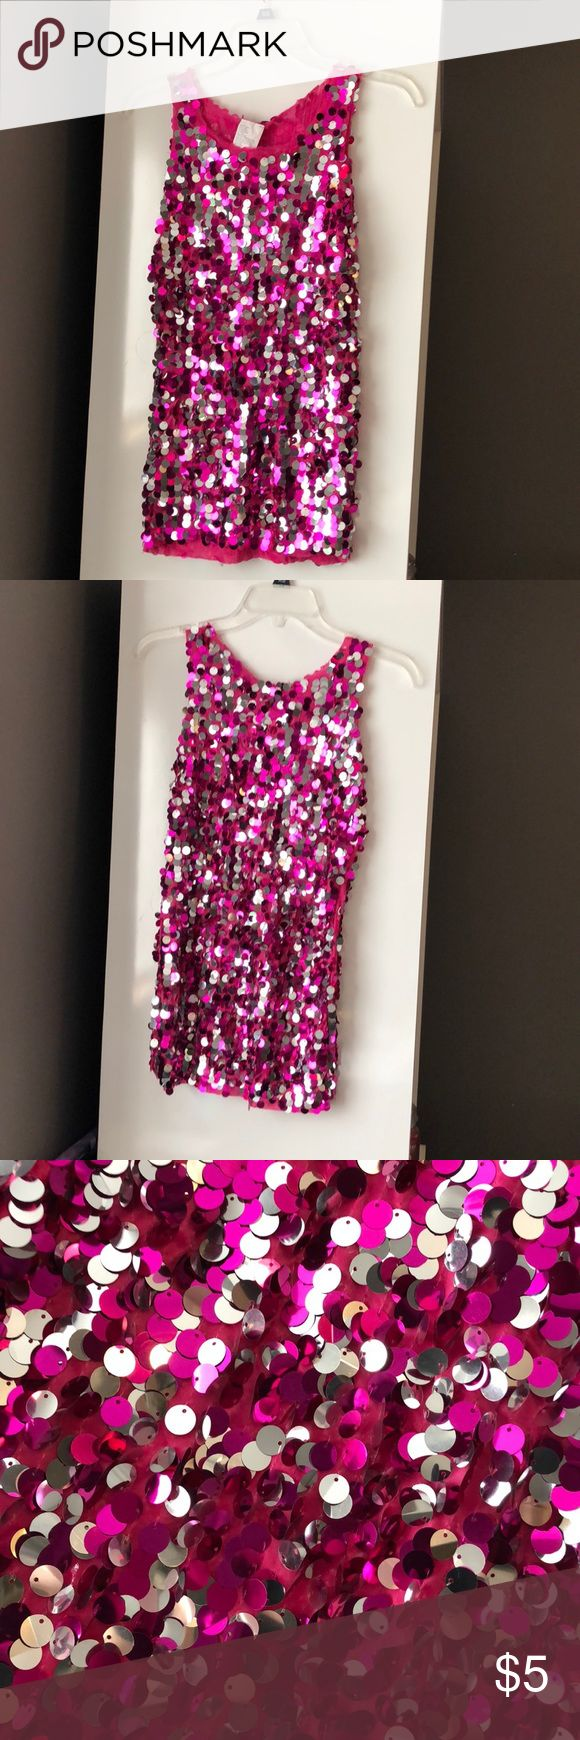 Pink sequin tunic 💕🎉 Pink sequin tunic. Cut in half for costume. A few pulls, price reflects condition. Super cute for a costume and NYE. Lots of life left. Length from shoulder: 26 inches. Non smoking Tops Tunics